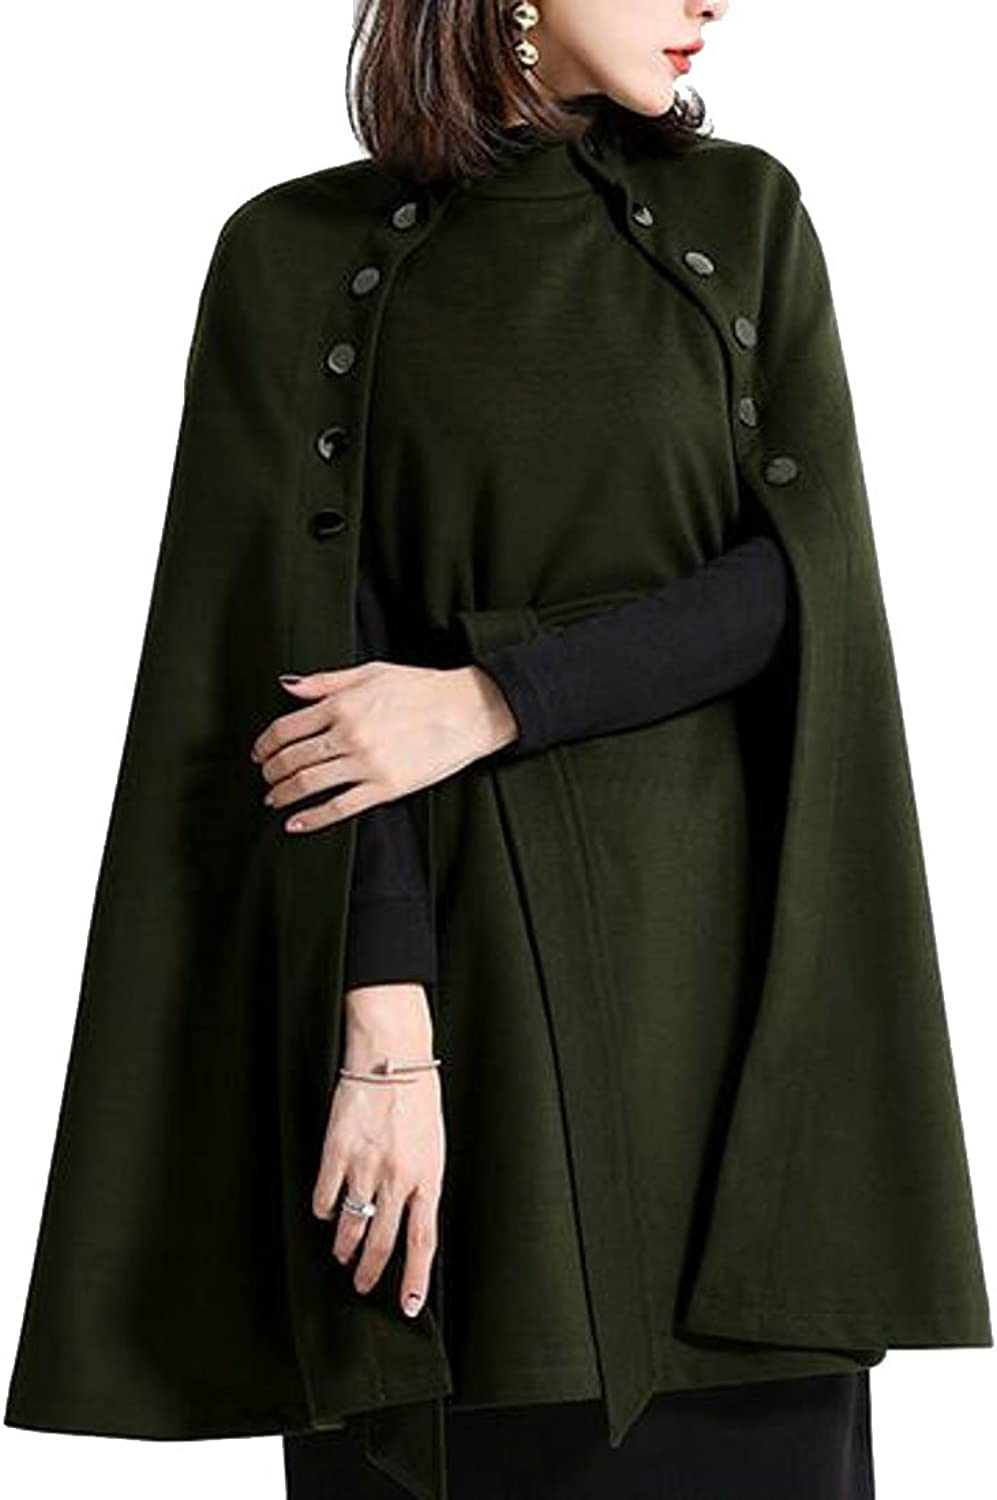 HTOOHTOOH Womens Solid color Mock Neck Wool Blend Pea Jacket Poncho Shawl